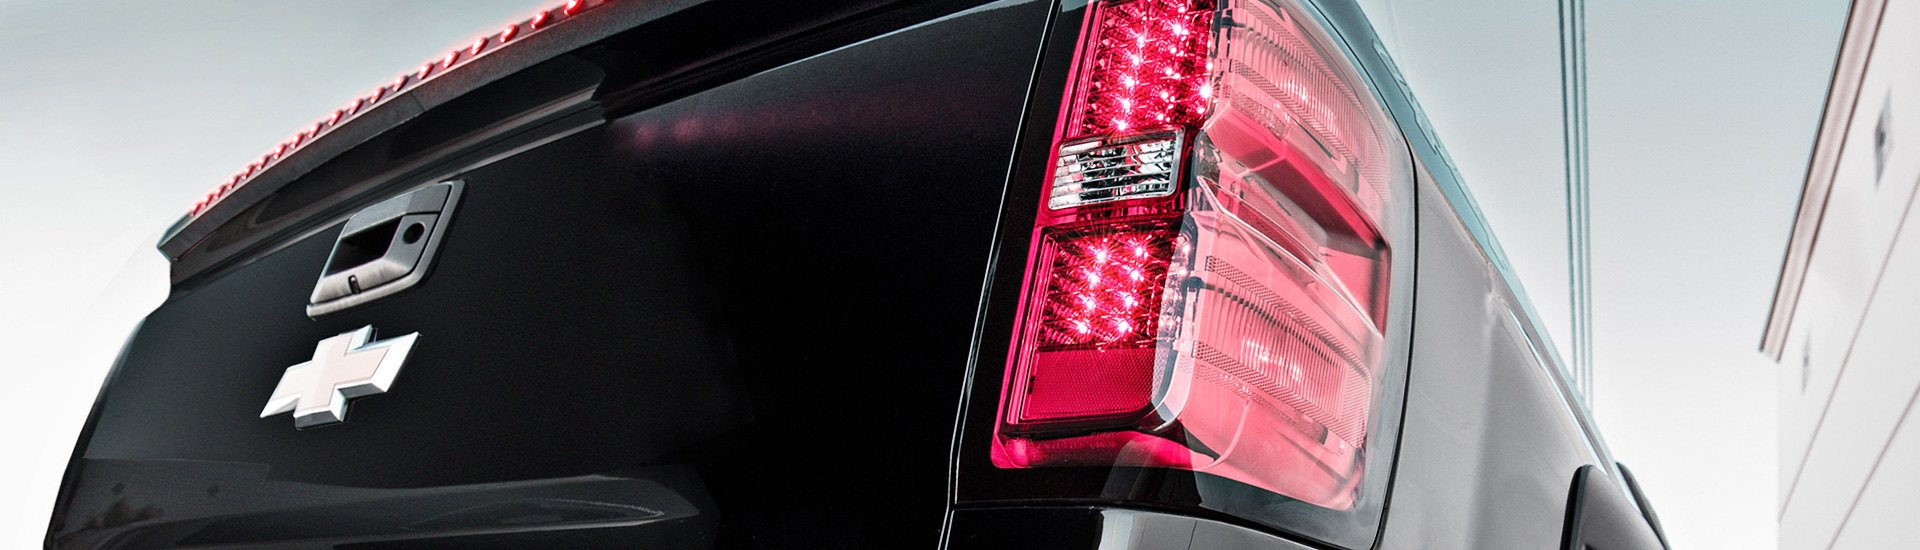 What Choices do I Have for Taillights?